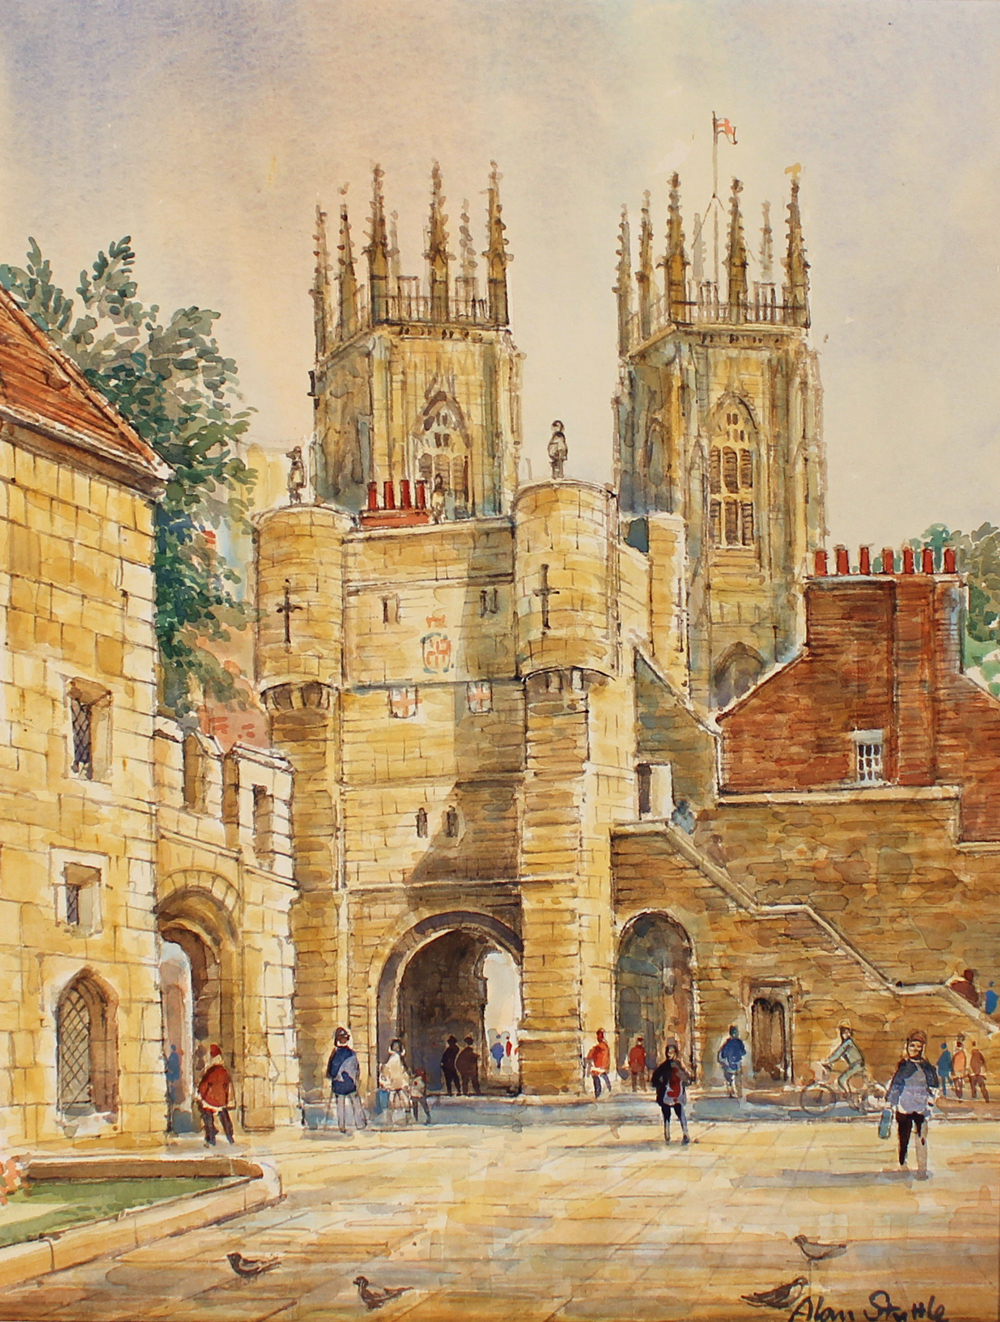 Alan Stuttle, Watercolour, York Minster from Bootham Bar, click to enlarge